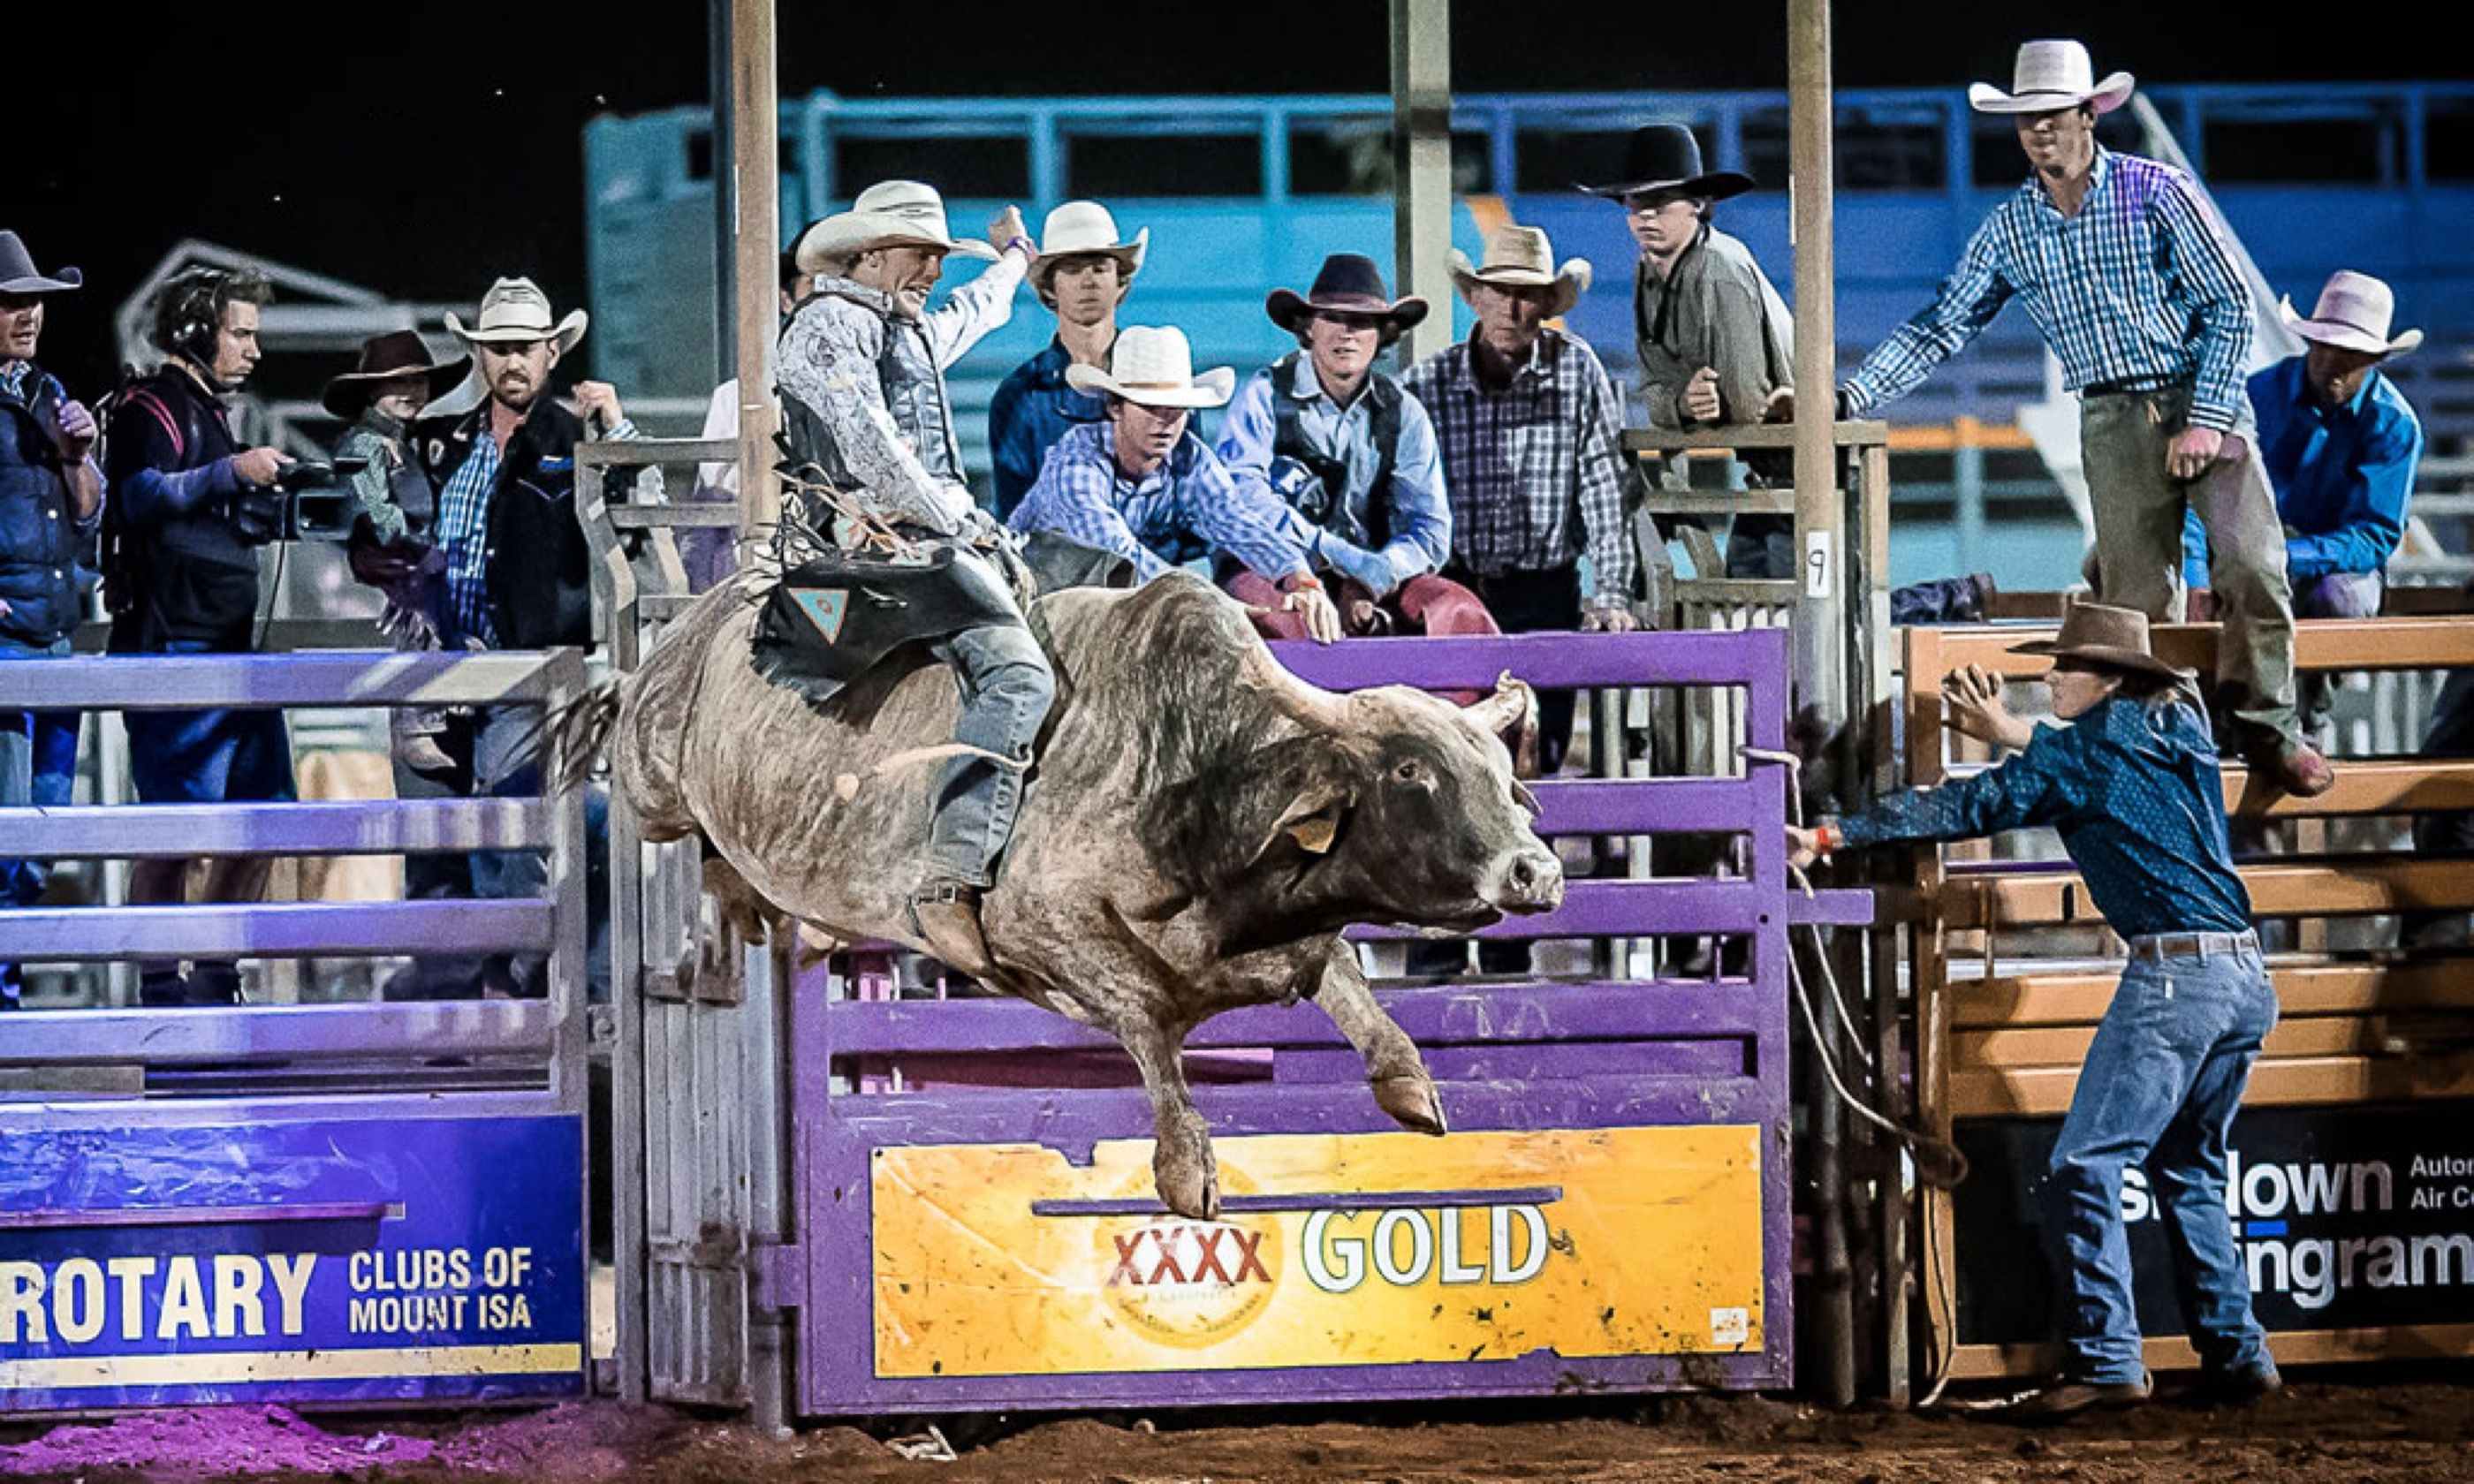 Bull riding at Mount Isa Rodeo (Stephen Mowbray/Mt Isa Rodeo)